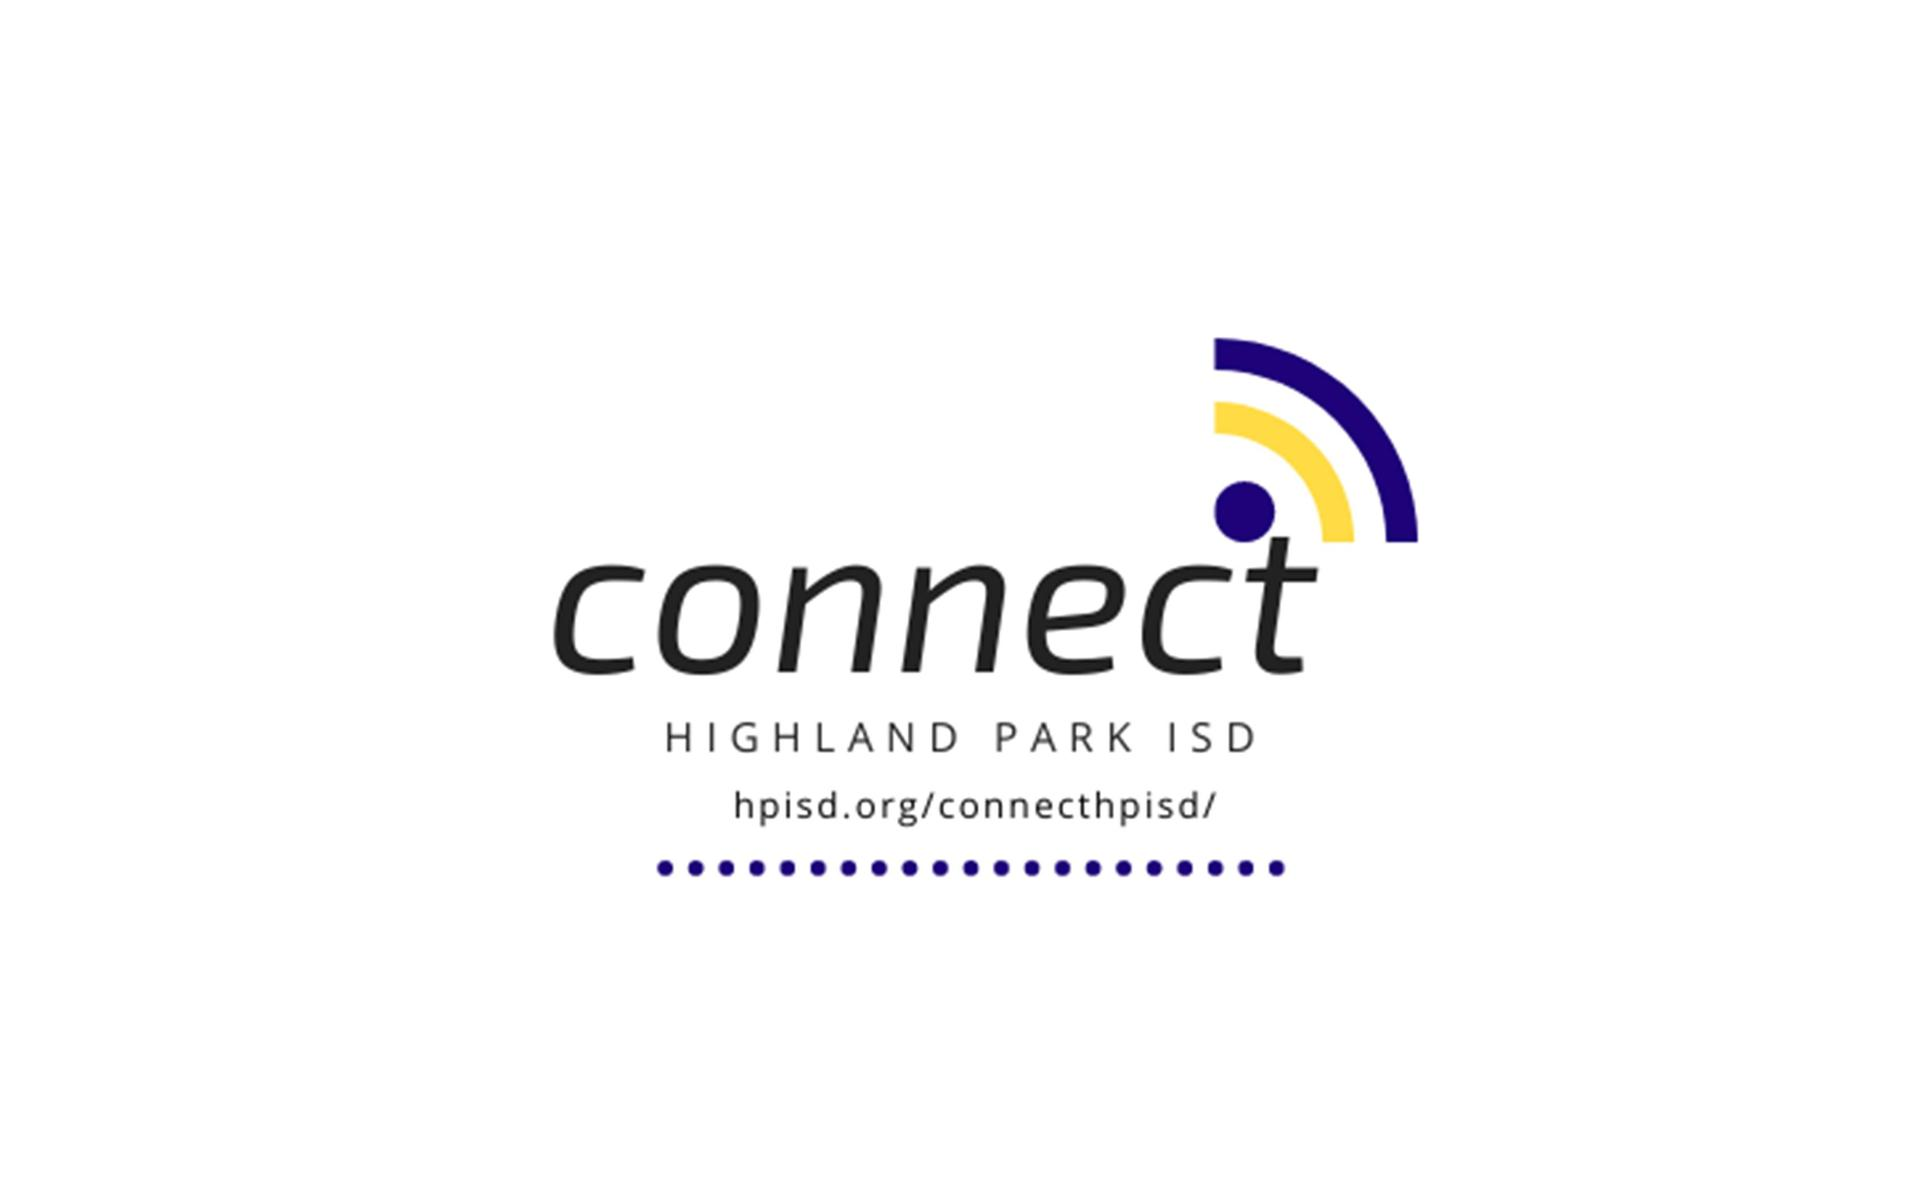 Connect HPISD